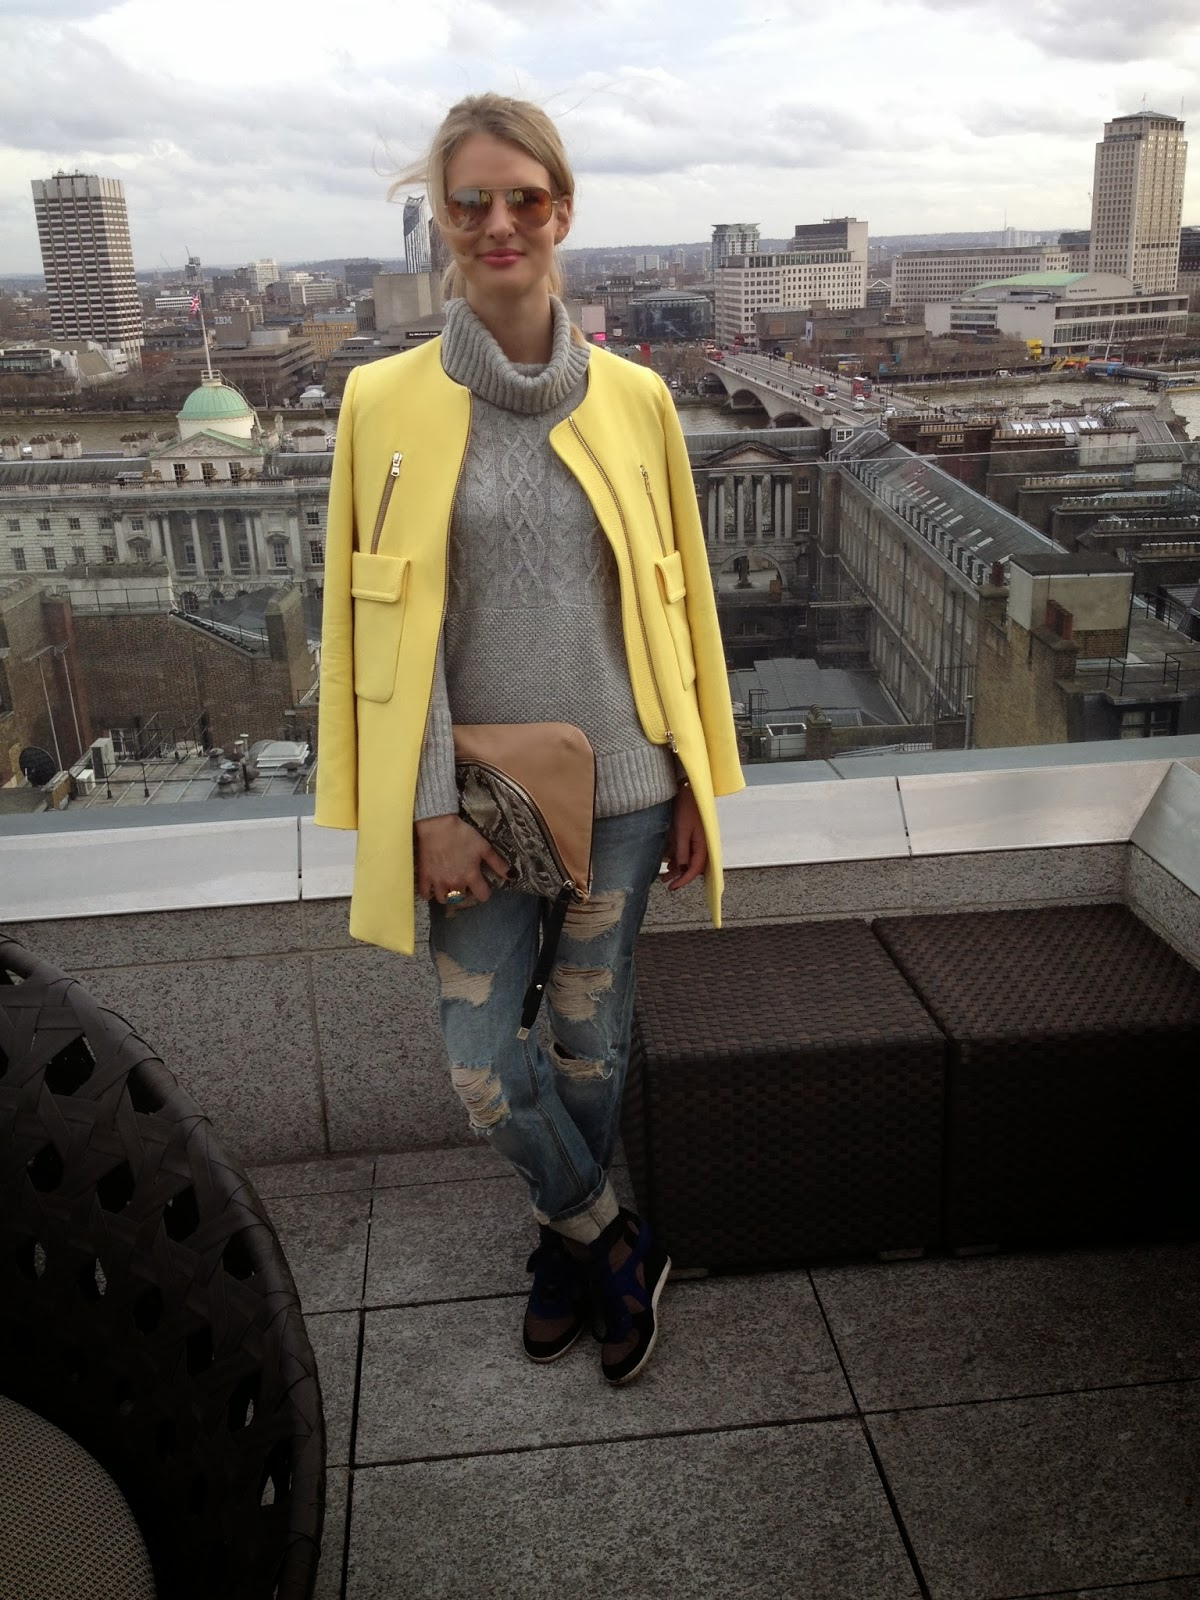 zara yellow coat, yellow coat, yellow coat with pockets, bright yellow coat, zara bright yellow coat, zara yellow coat ss 14, me hotel, me hotel london, lfw, asos, asos boyfriend jeans, asos ripped boyfriend jeans, ripped jeans, ripped boyfriend jeans, boyfriend jeans, ash trainers, ash wedge trainers, chrissabella